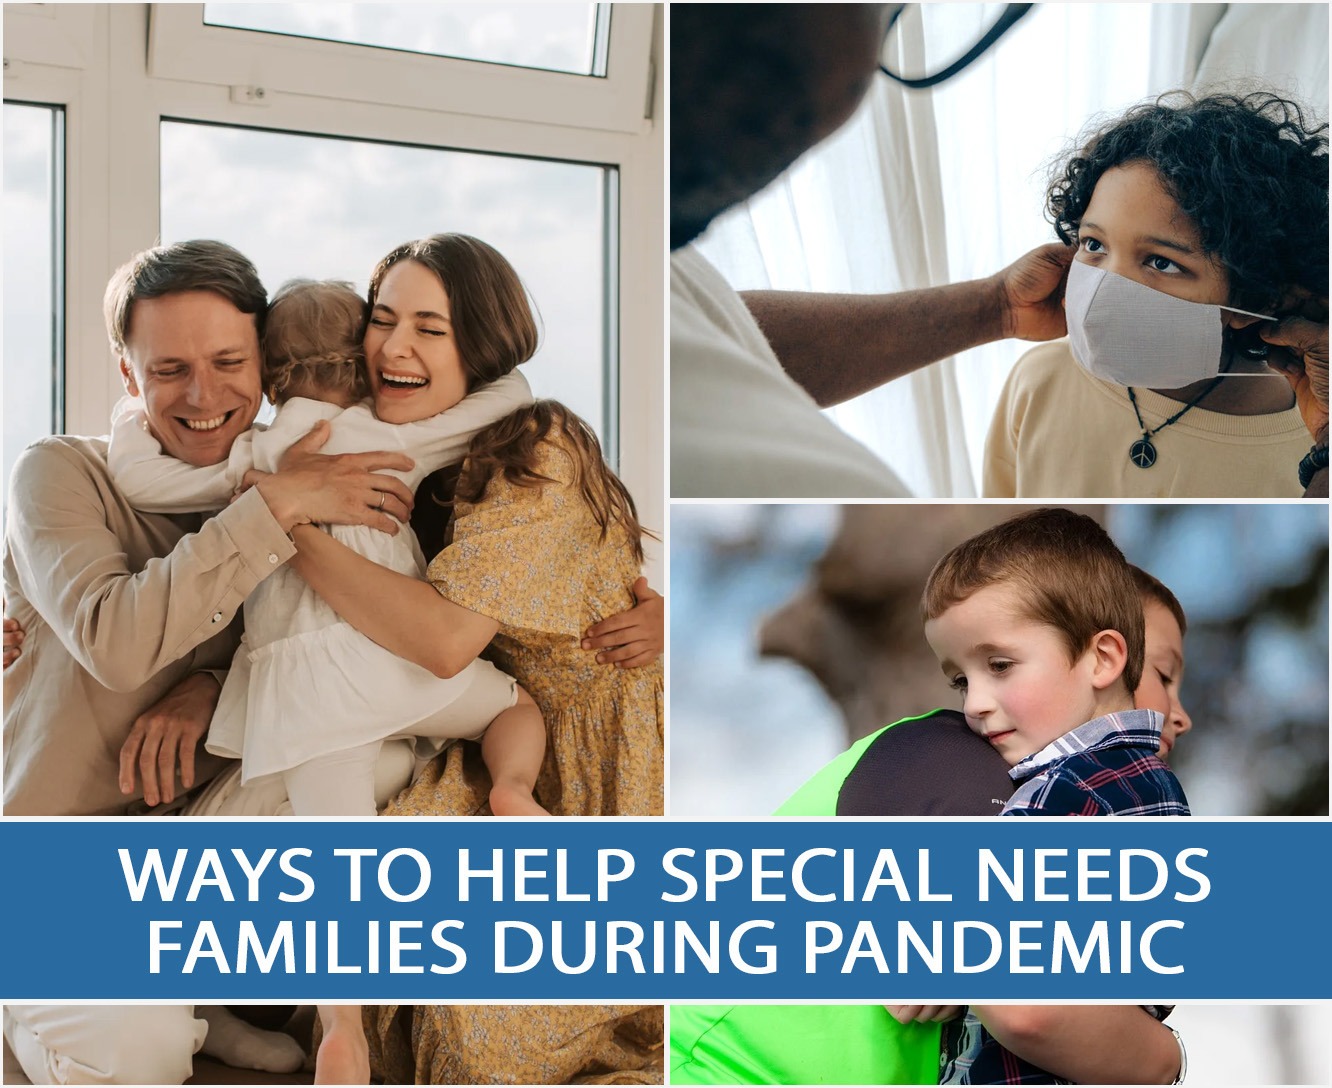 WAYS TO HELP SPECIAL NEEDS FAMILIES DURING PANDEMIC